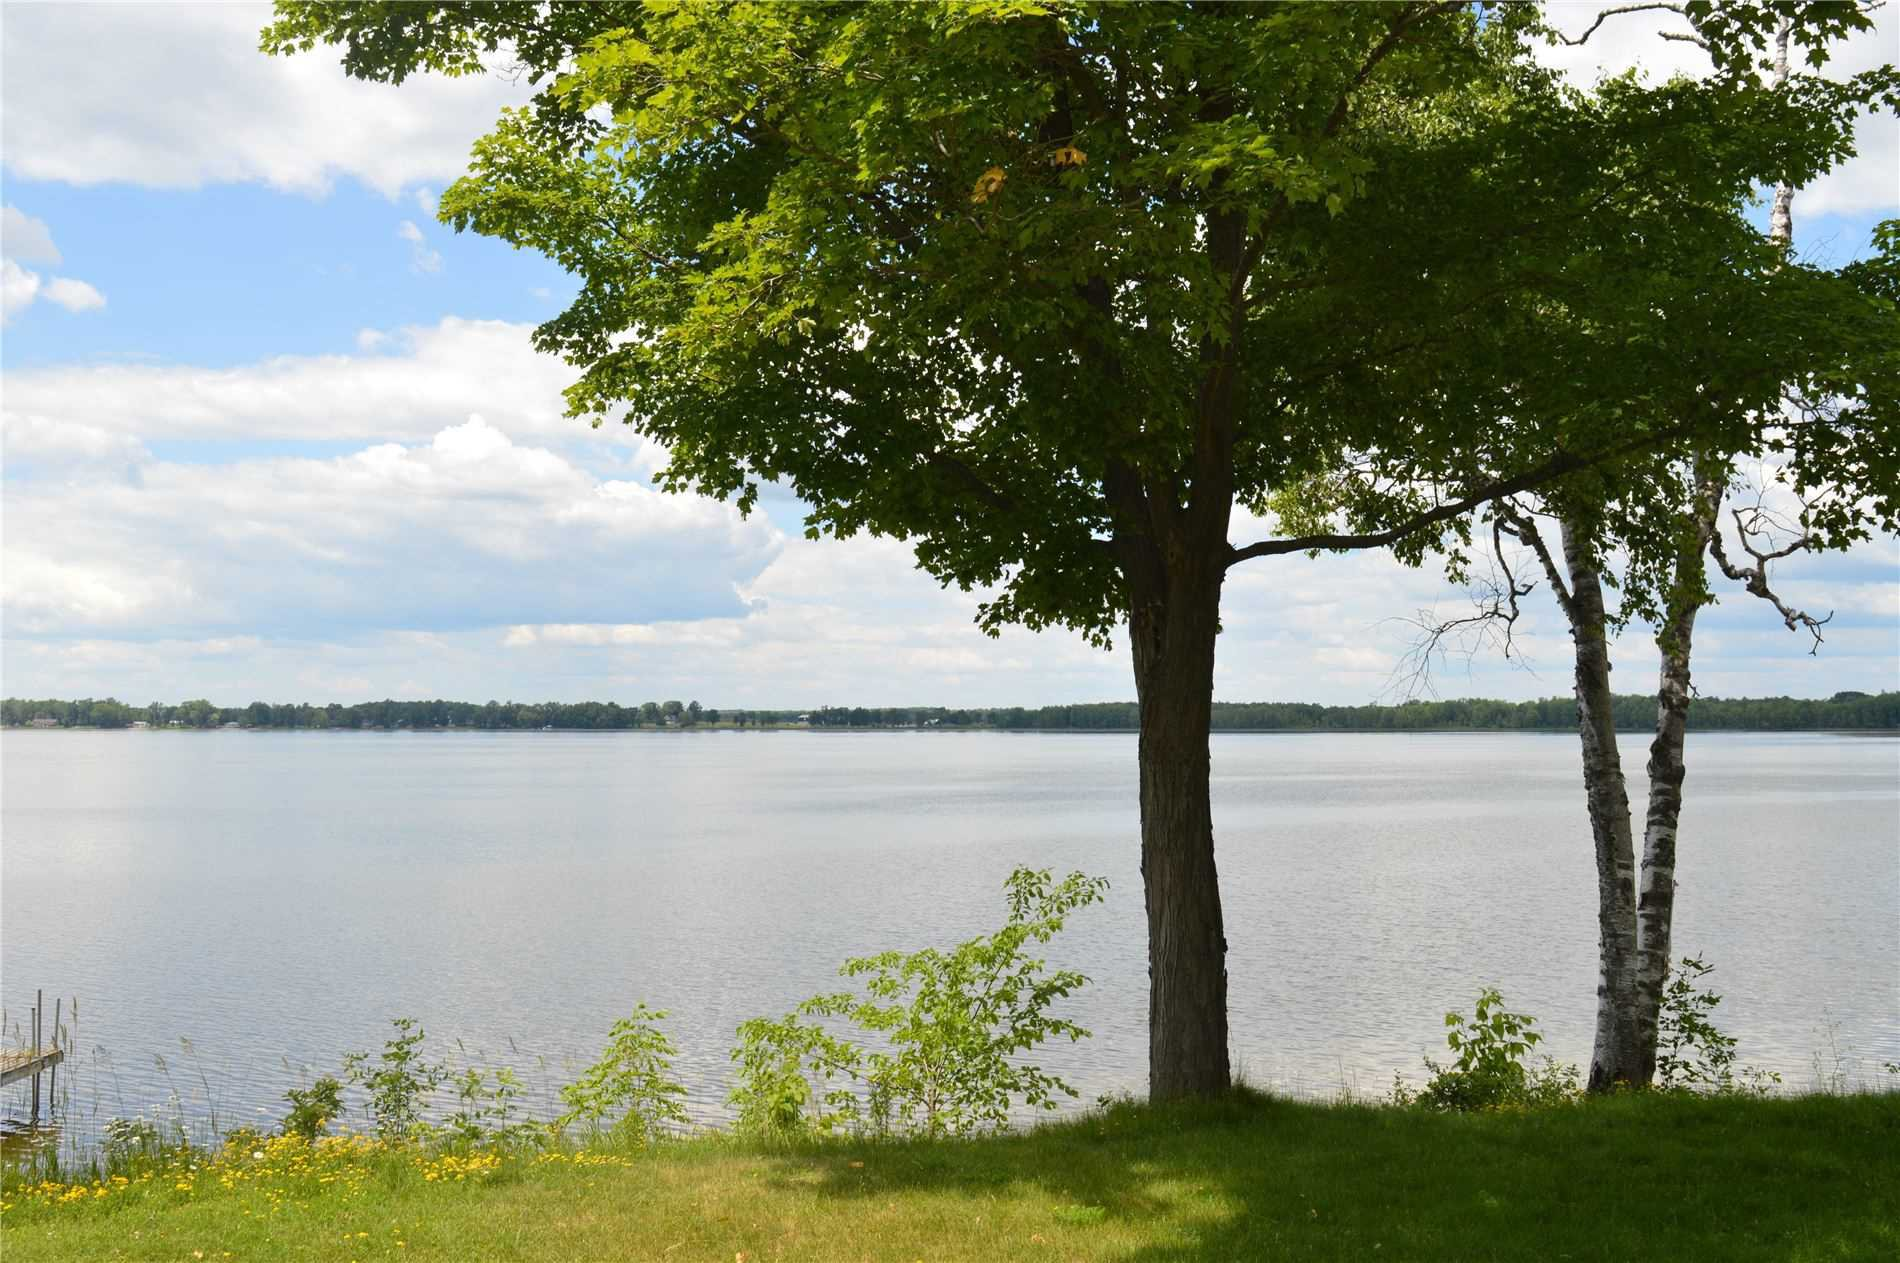 Main Photo: 97 Campbell Beach Road in Kawartha Lakes: Rural Carden House (Bungalow) for sale : MLS®# X4859140